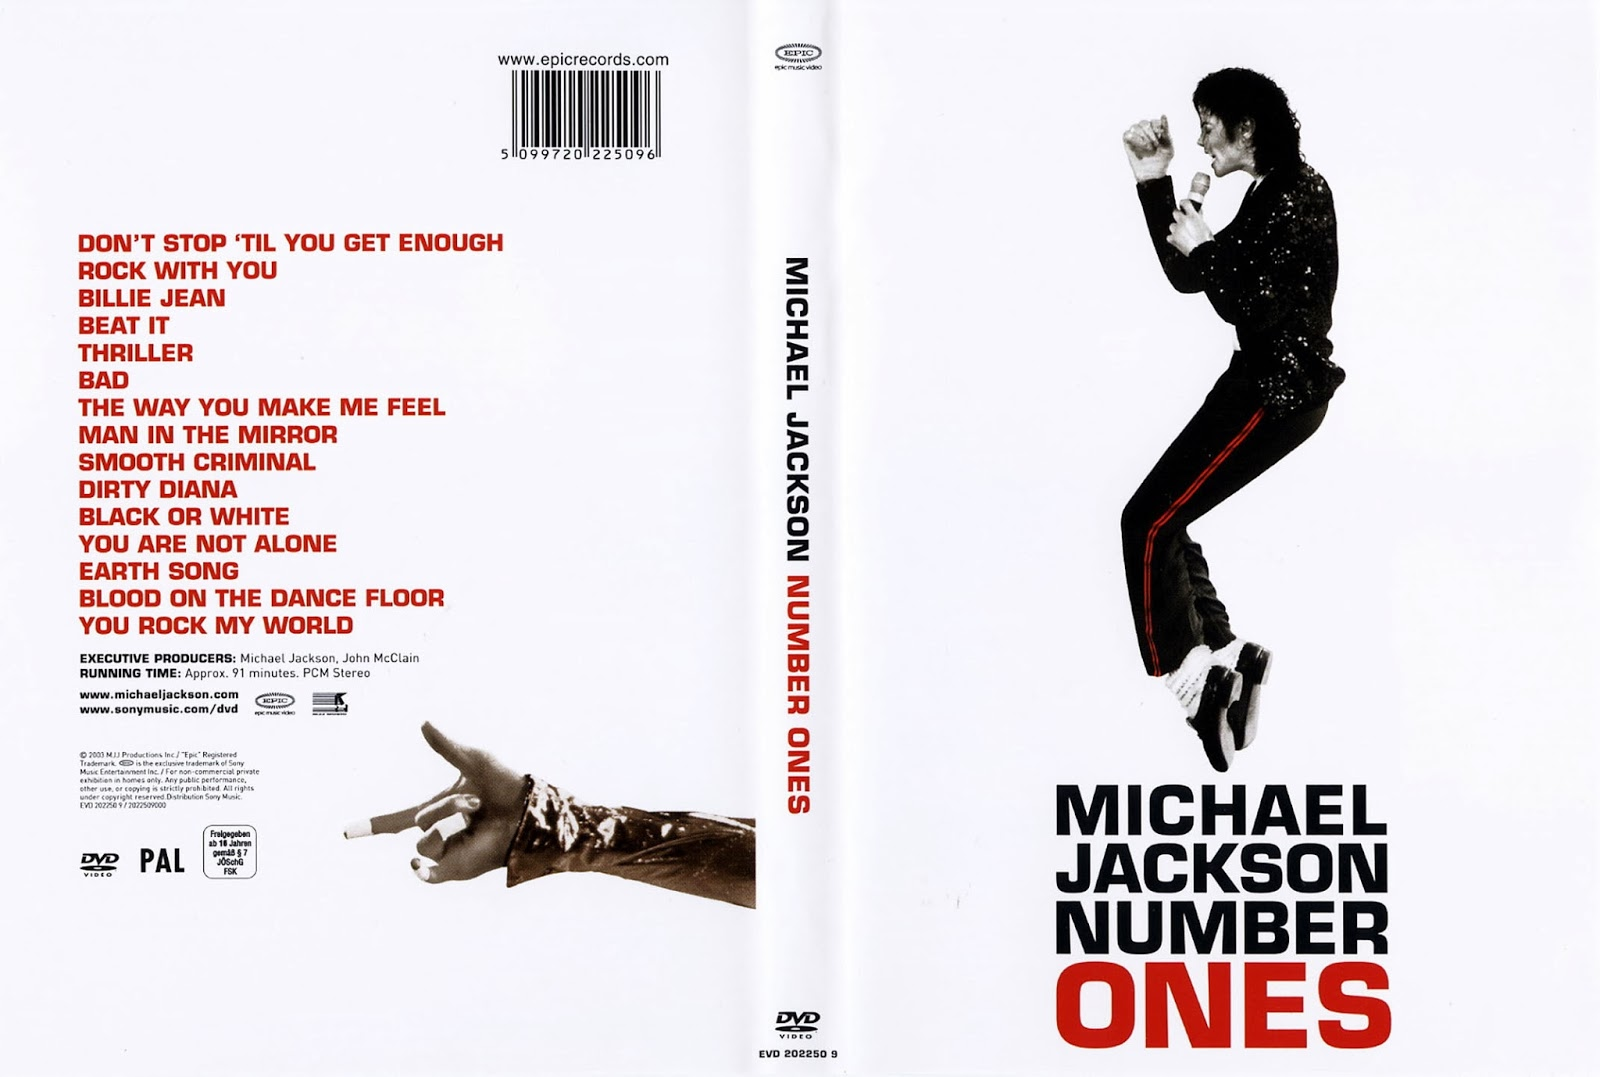 Jackson mania download michael jackson number ones 2003 for 1234 get on the dance floor audio song download